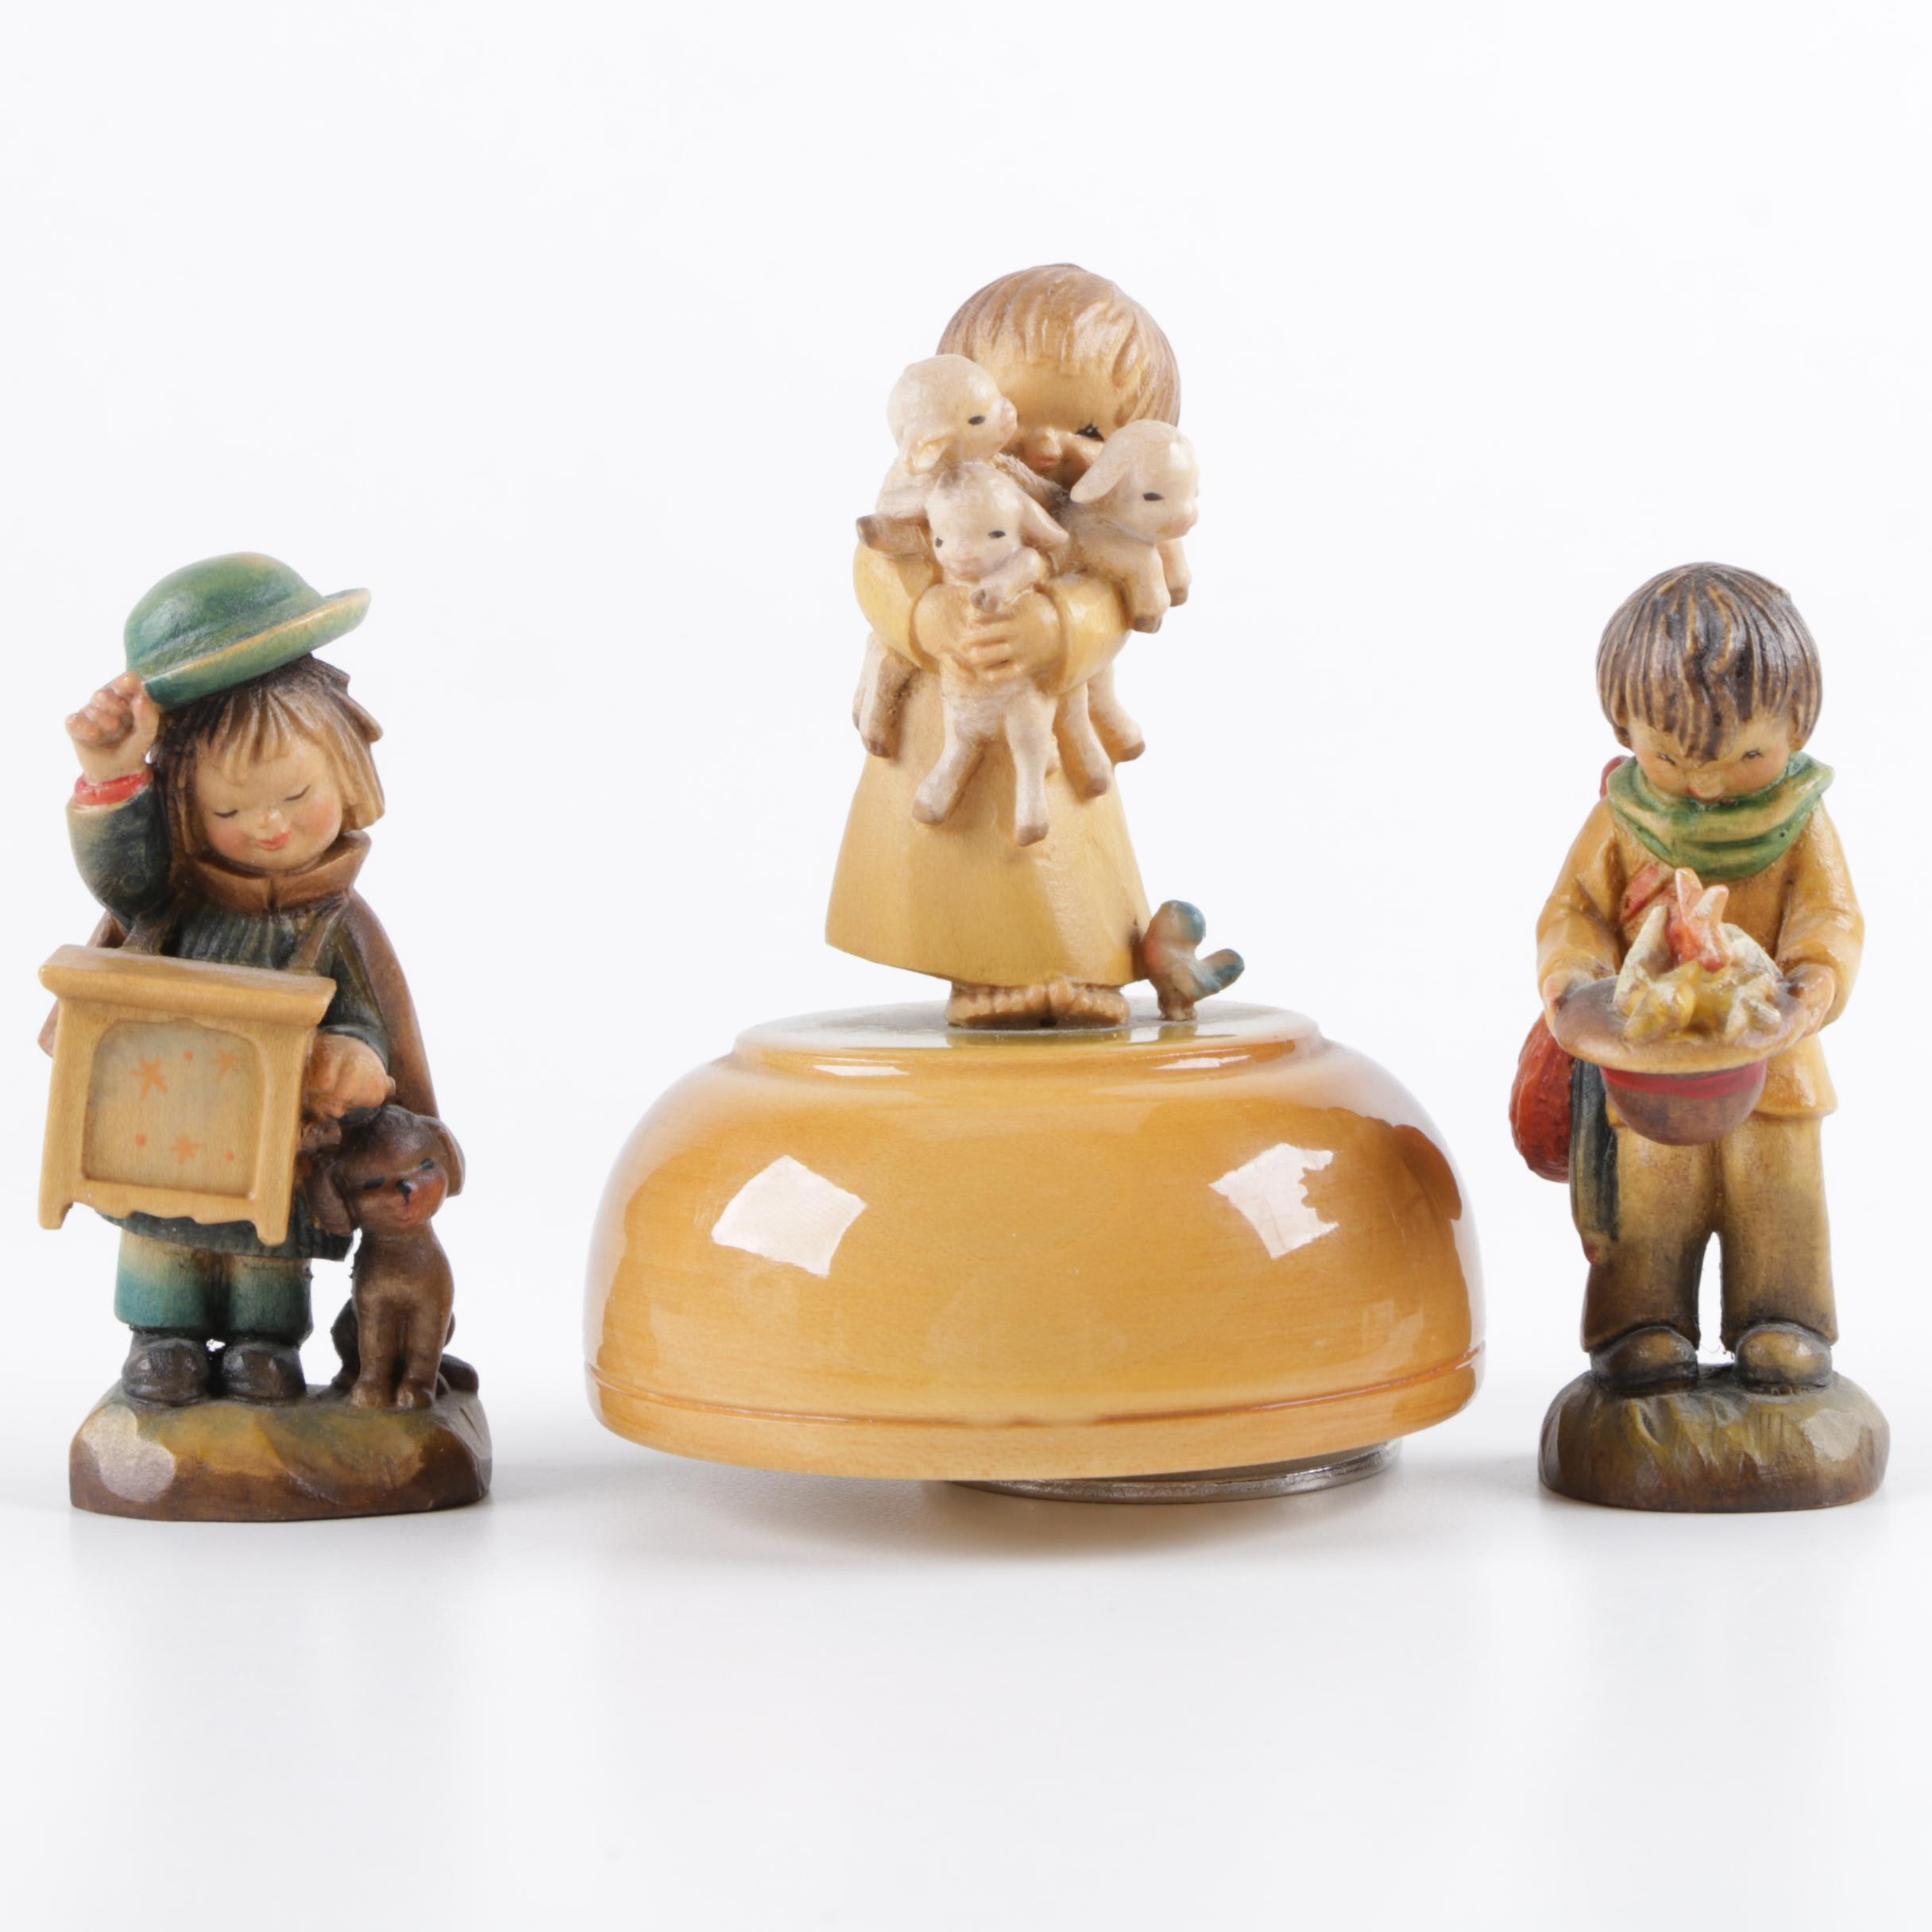 Reuge Music Box With Carved Wood Anri Boy and Girl Figurines